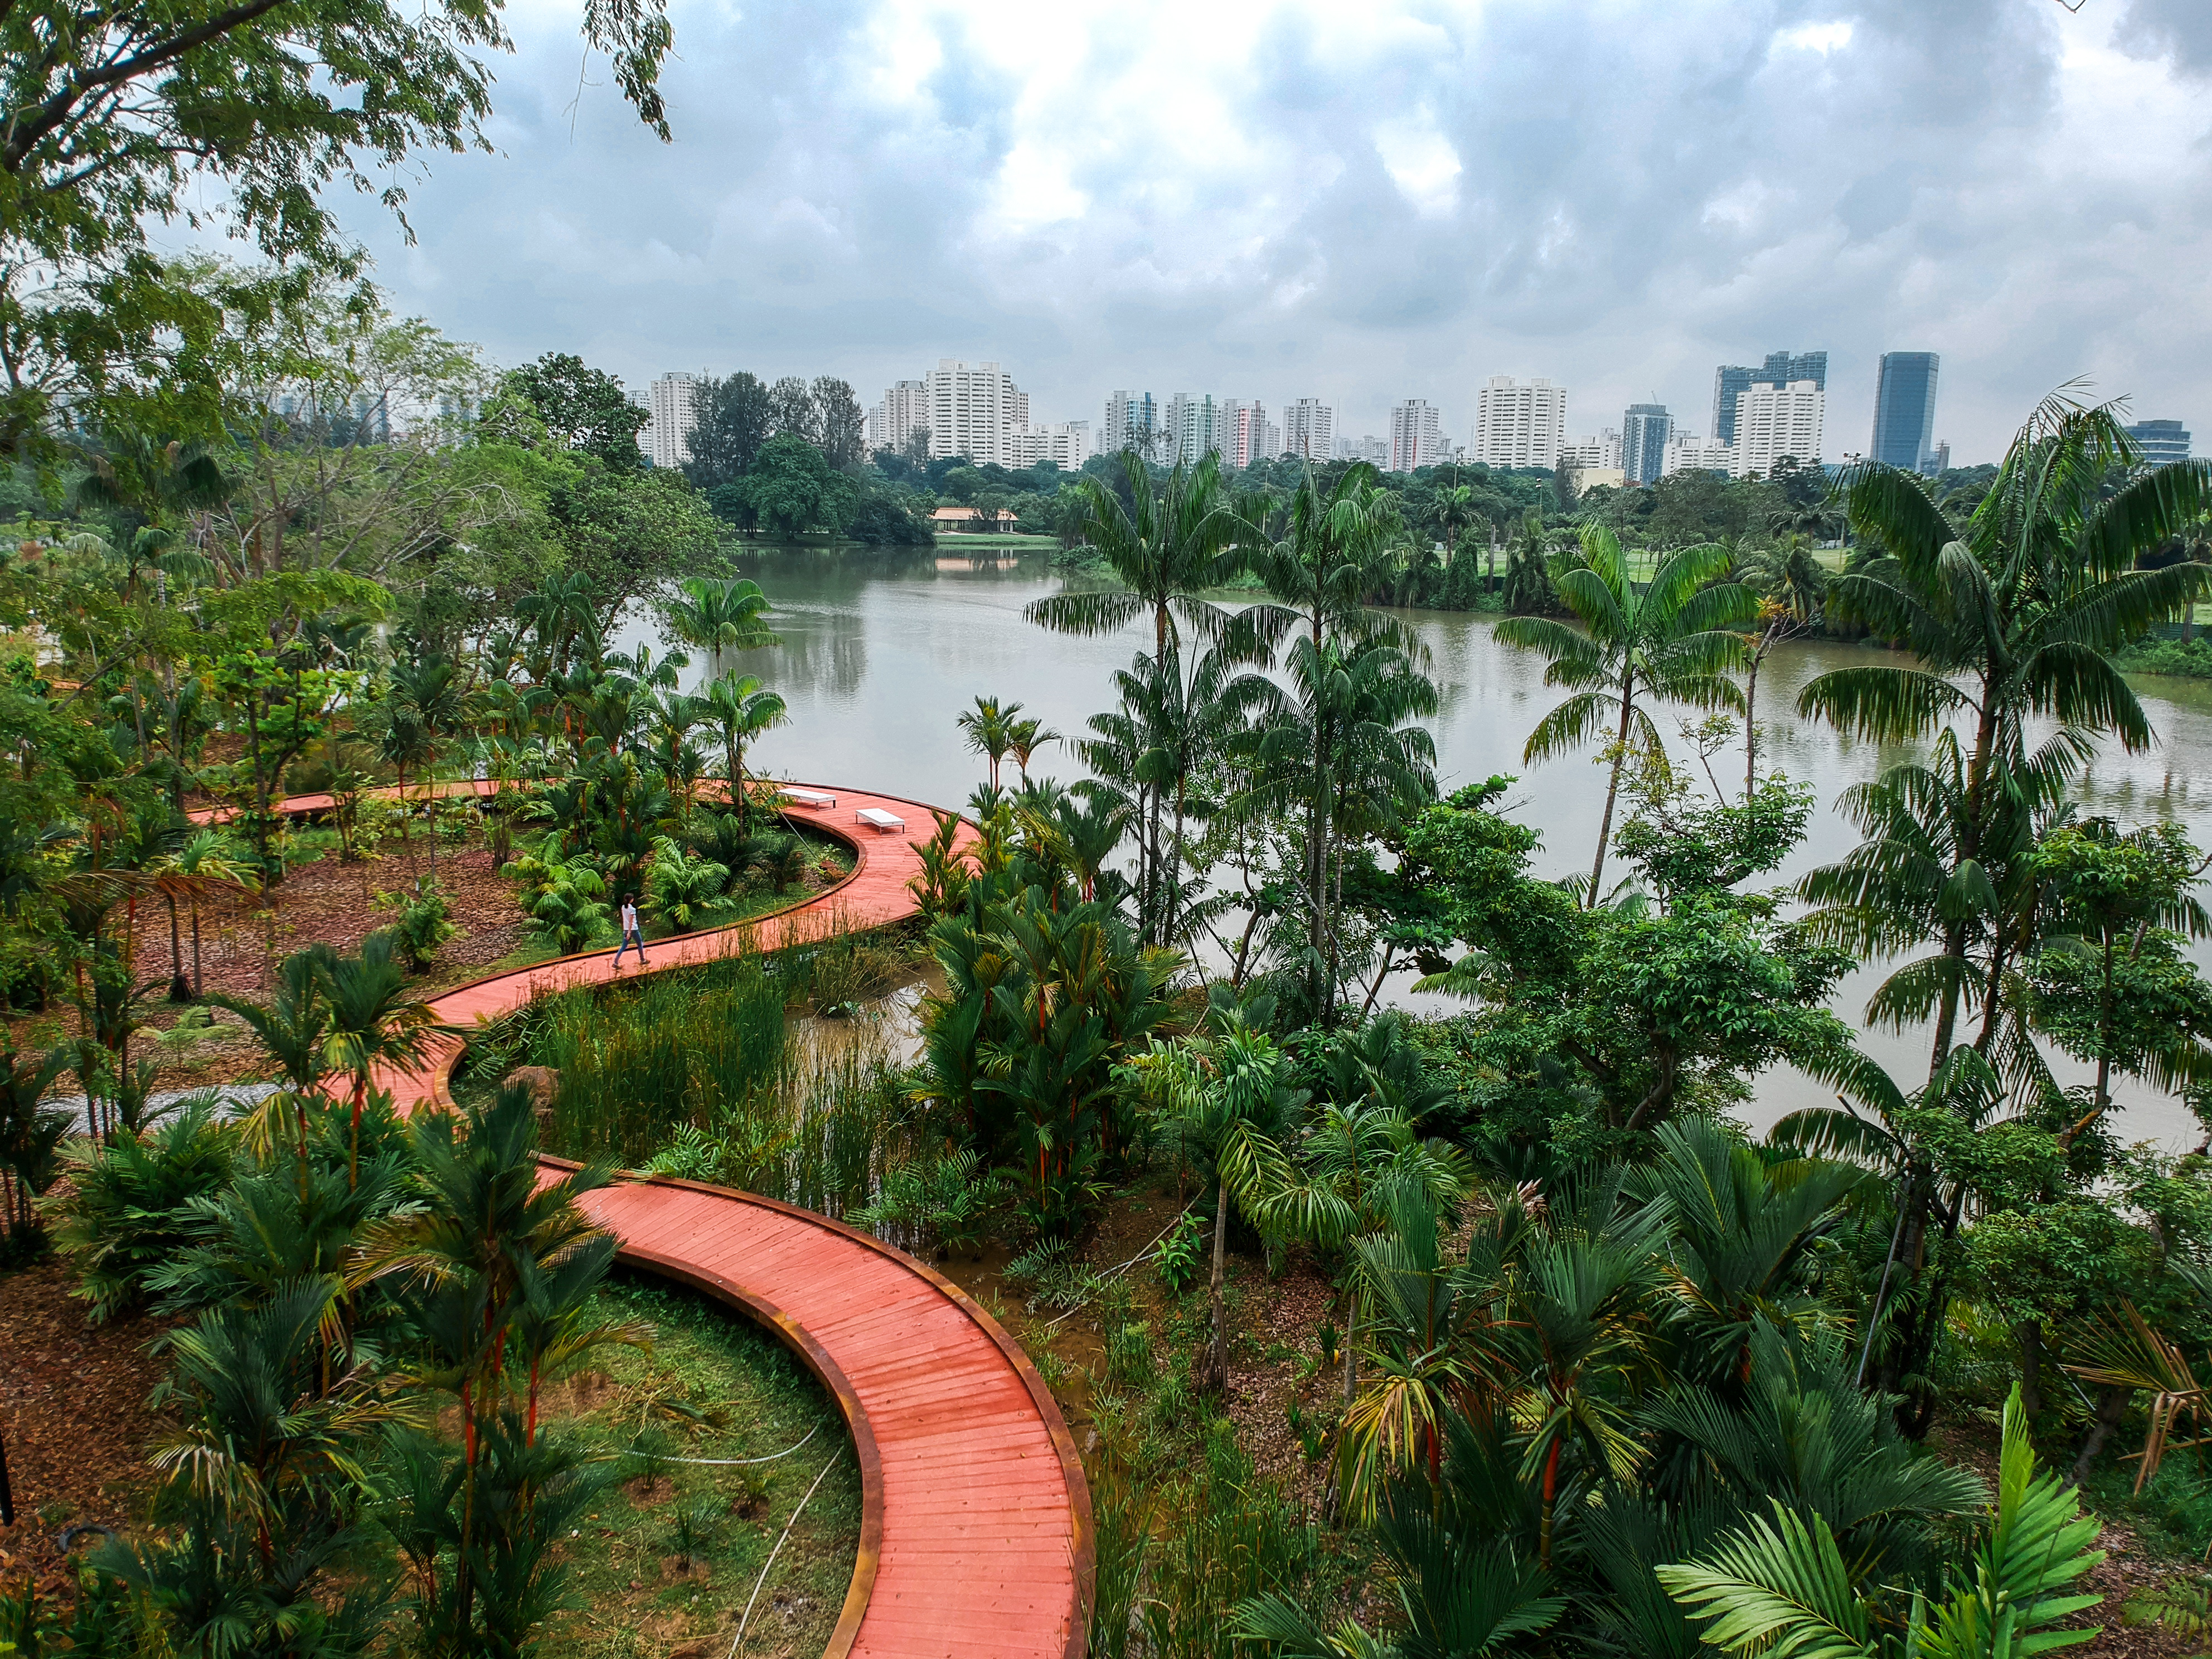 Best 10 Picnic Spots in Singapore